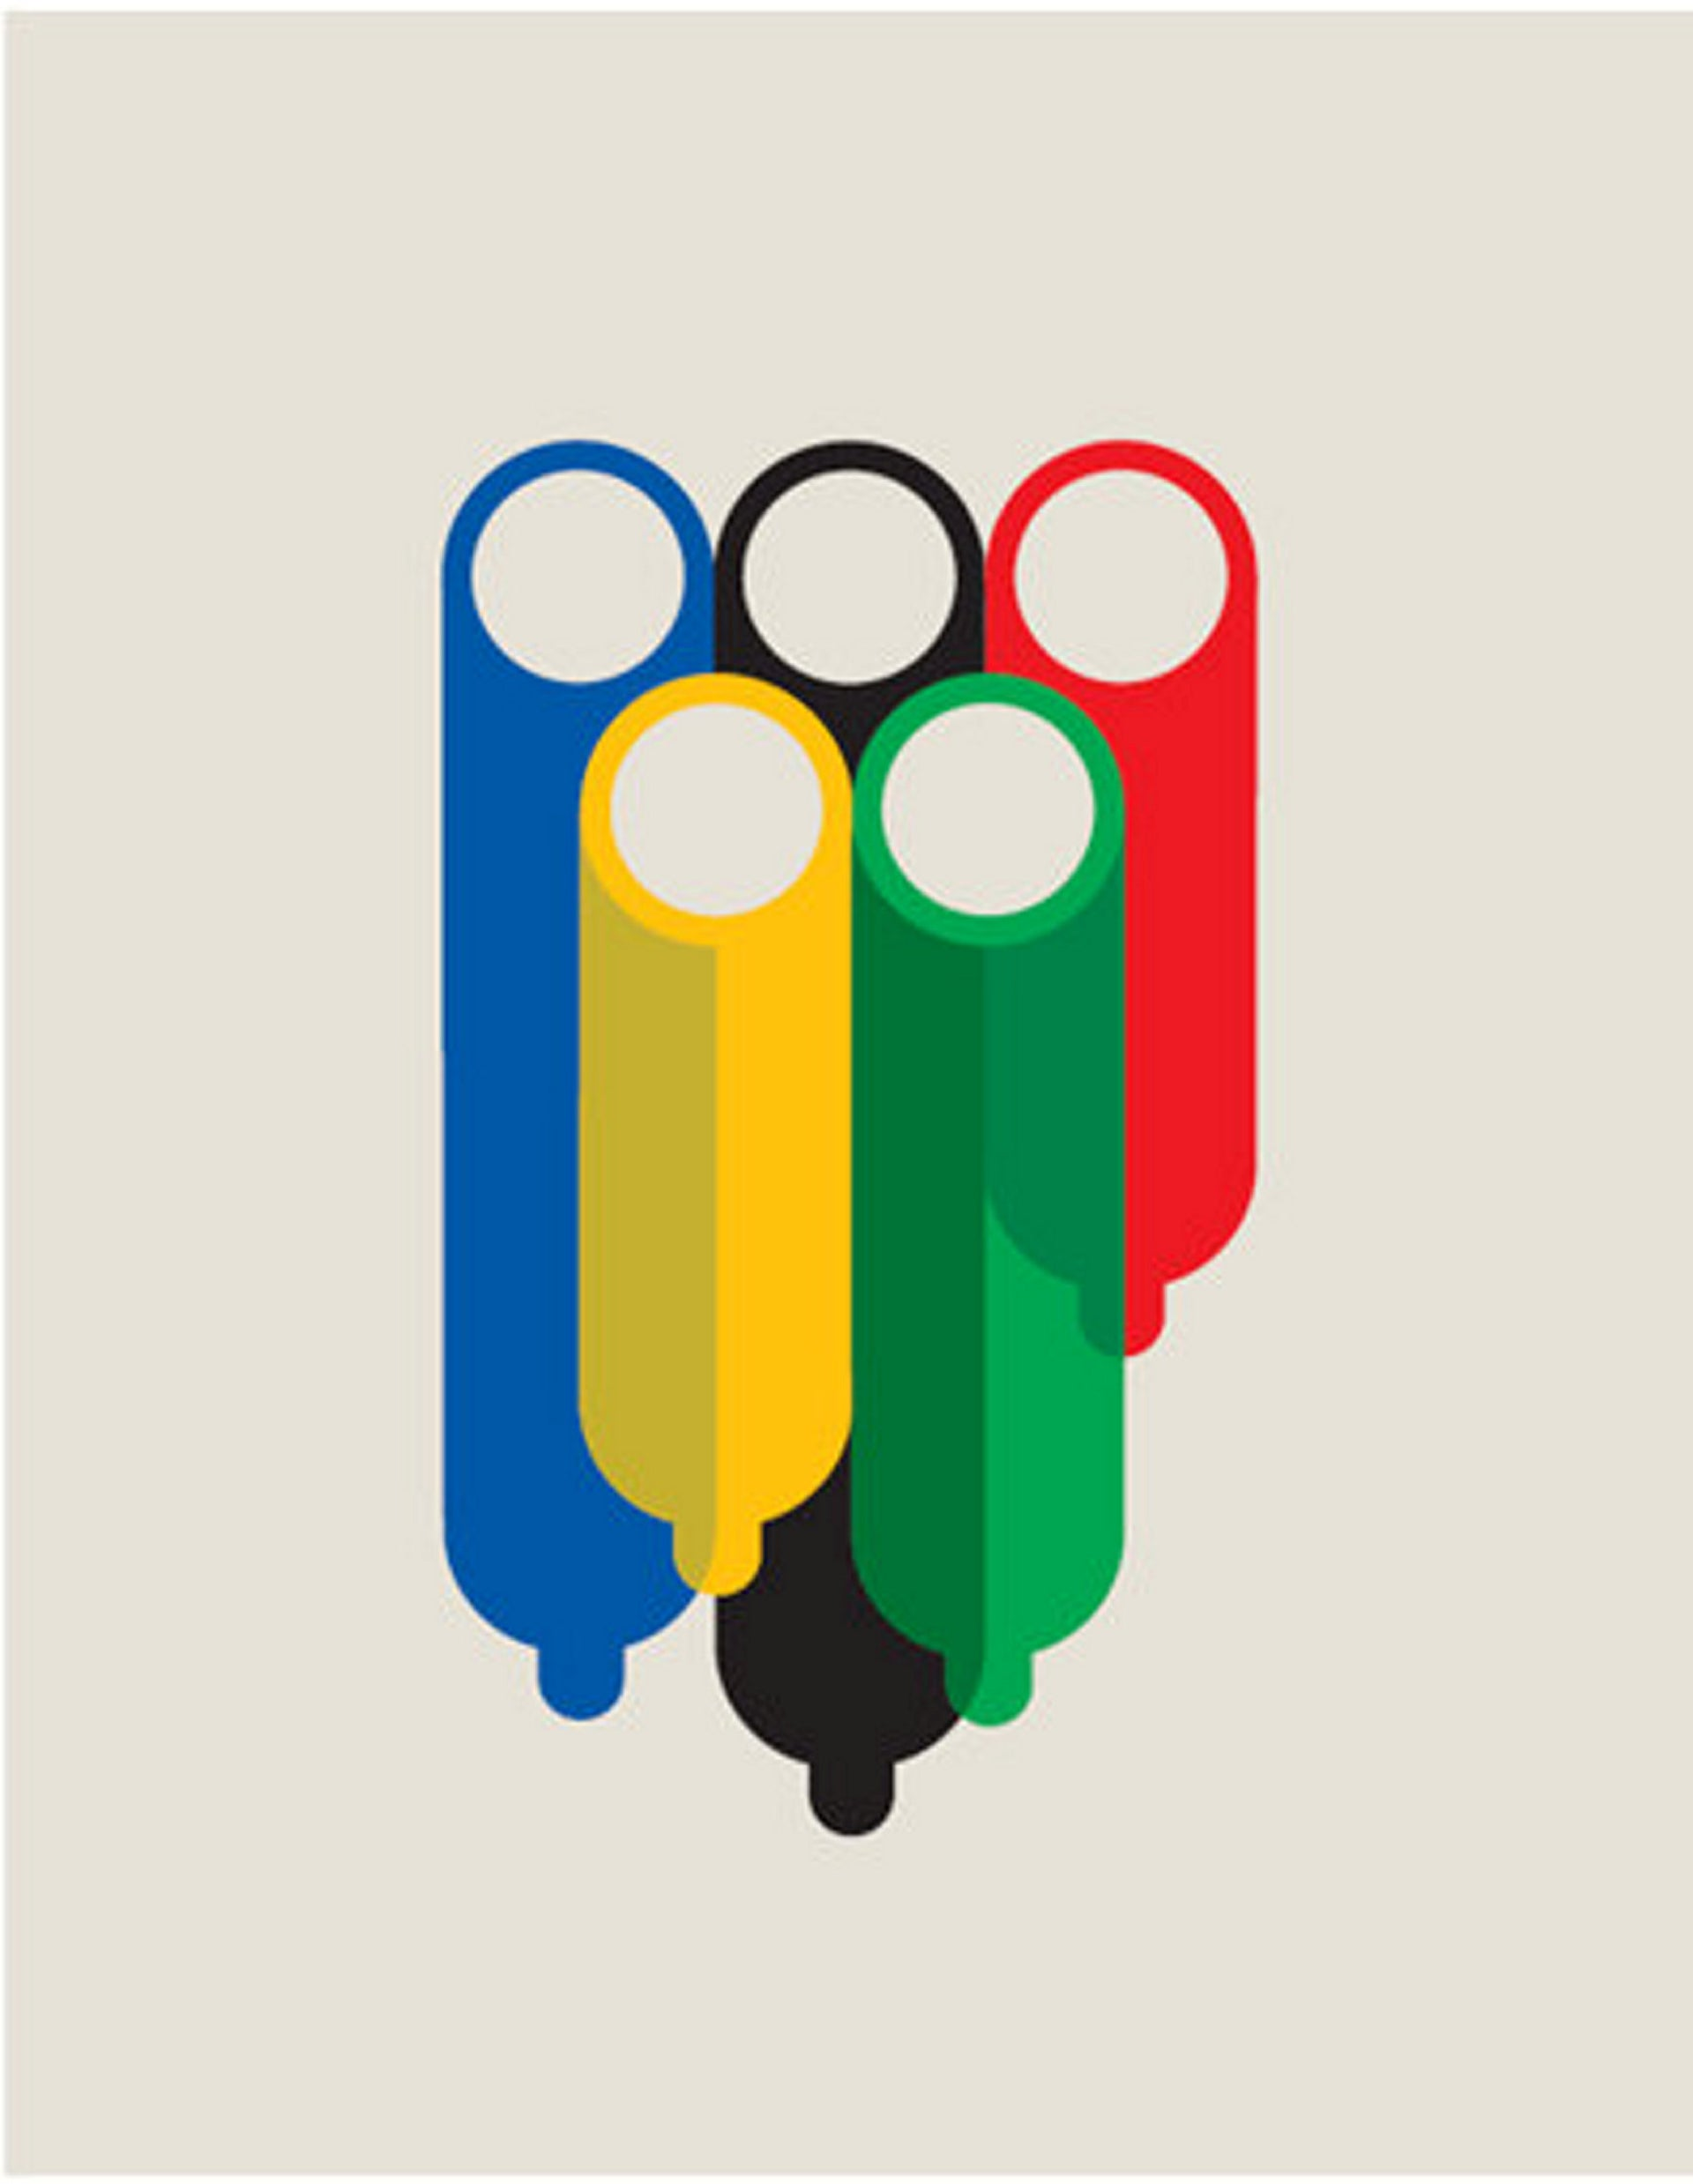 Illustration for an article on sex at the Olympics, ESPN magazine, 2013